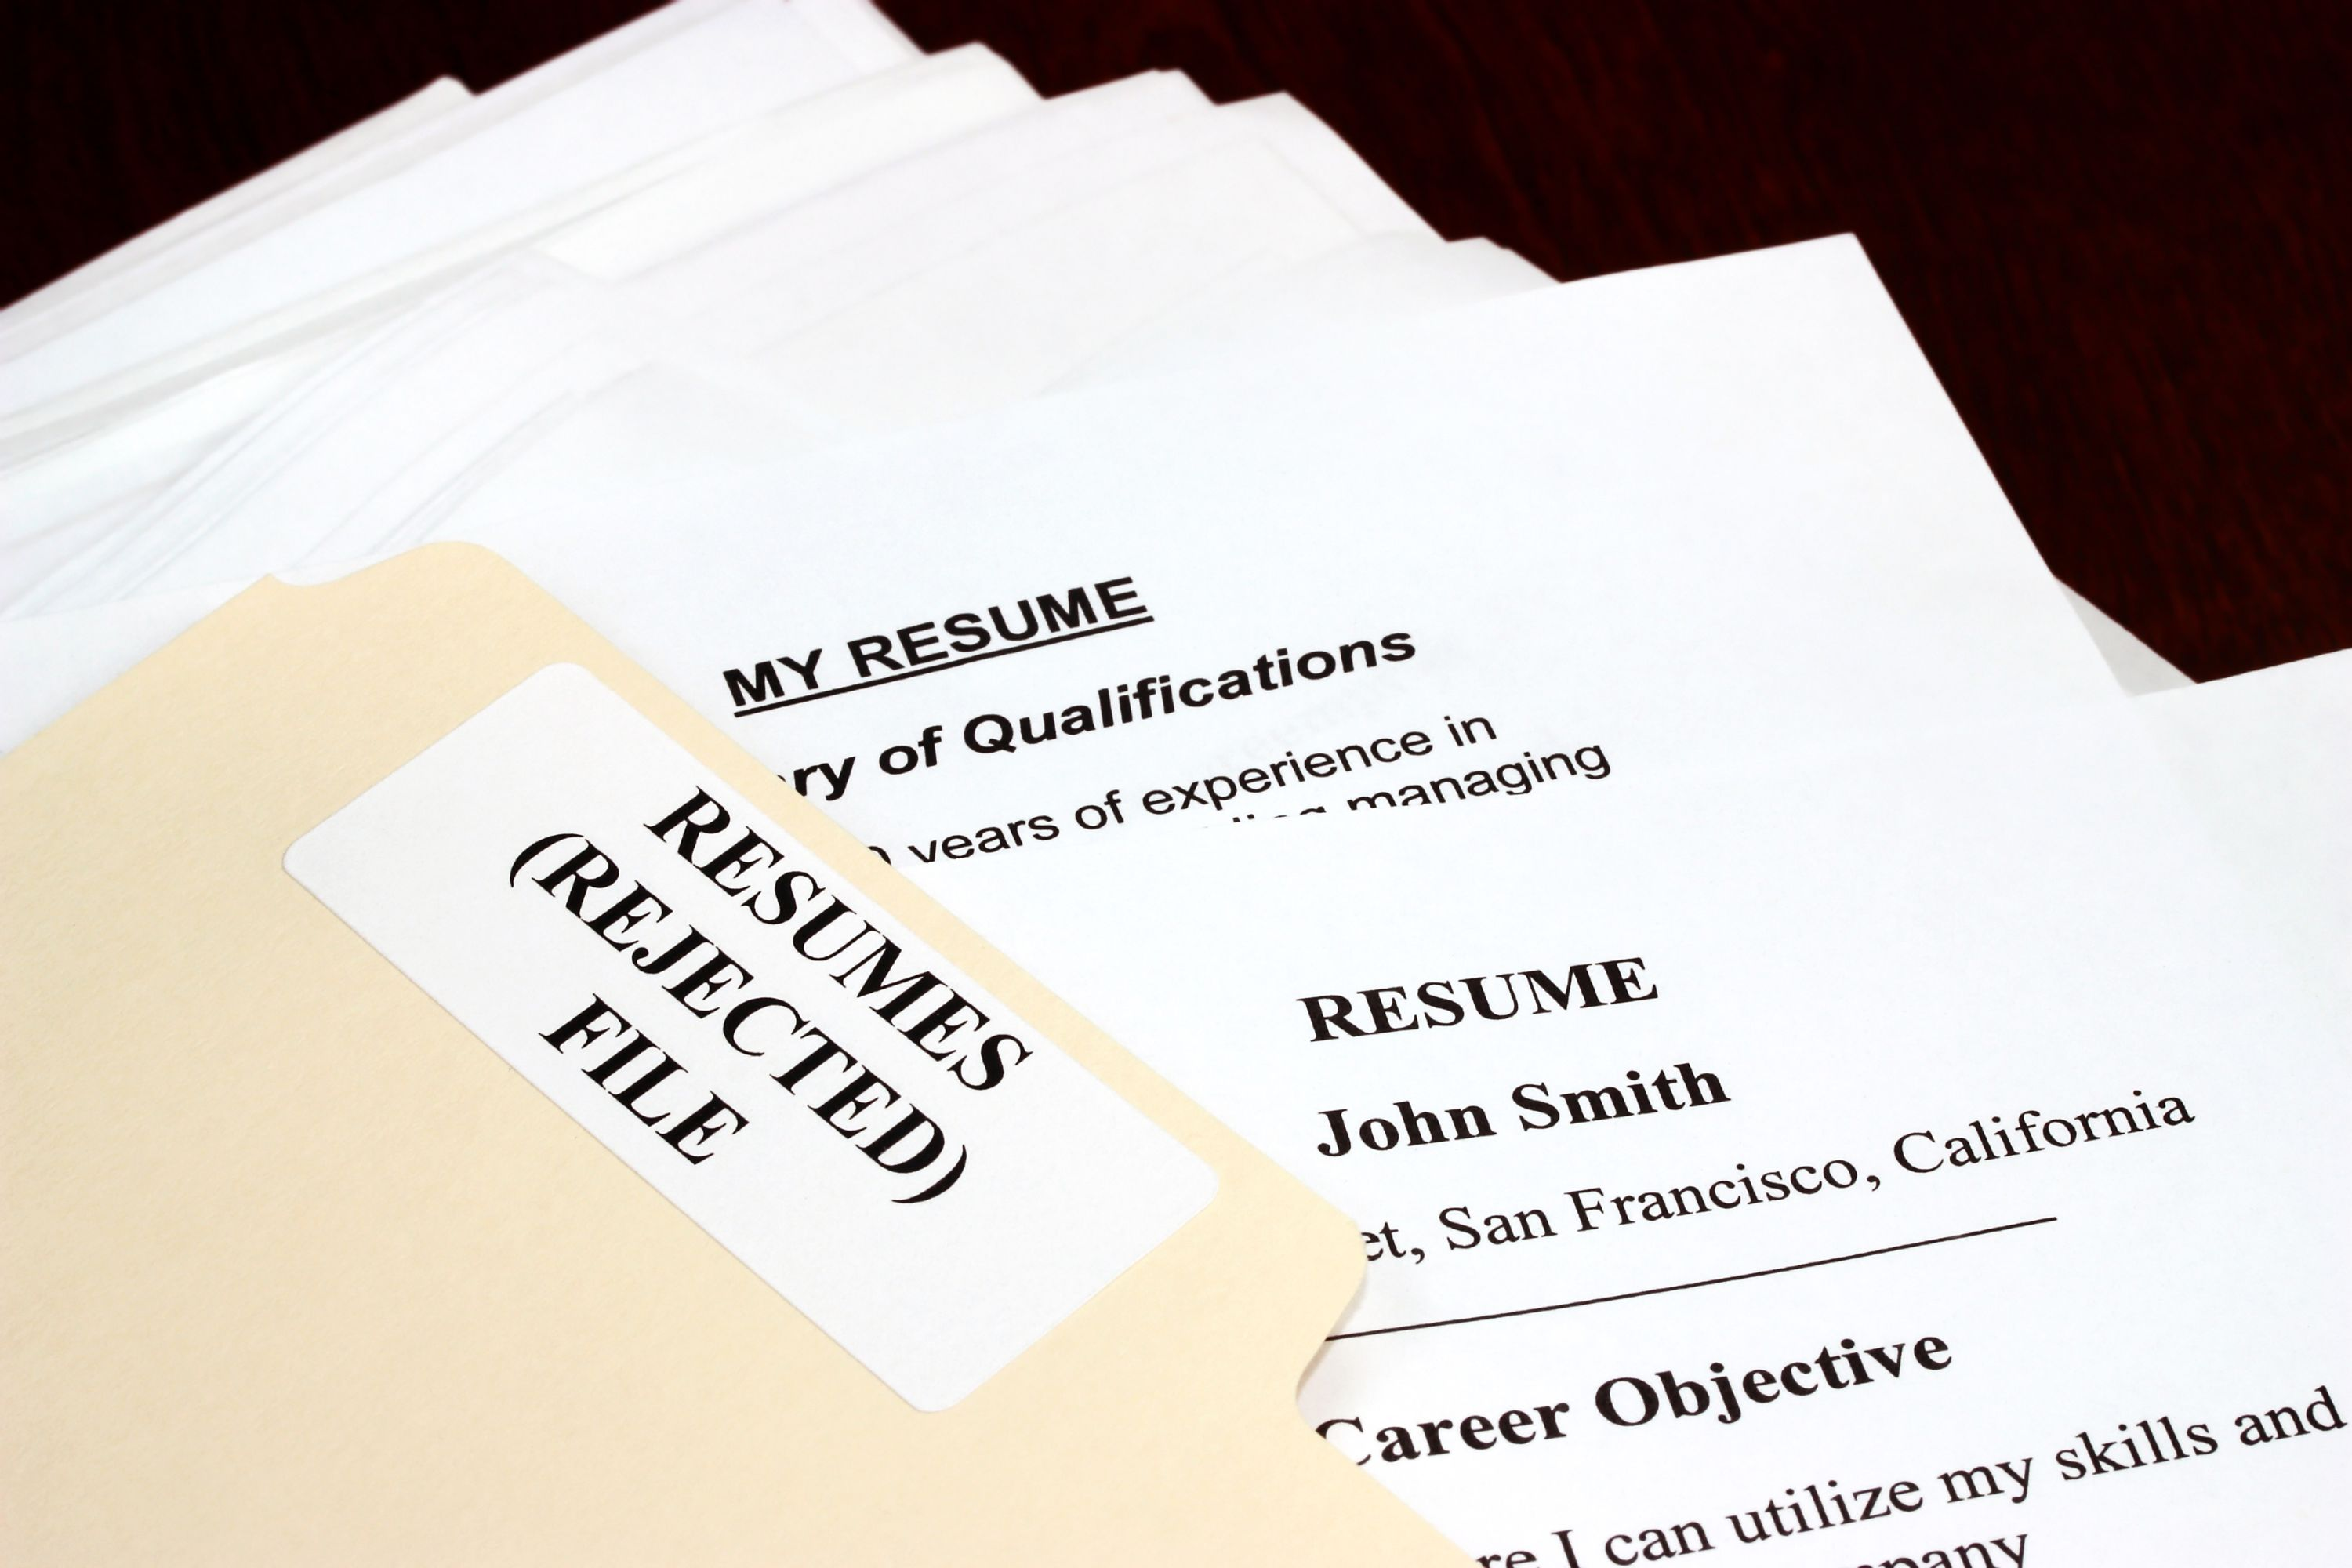 How To Get Your Resume Noticed Police Test Tutor